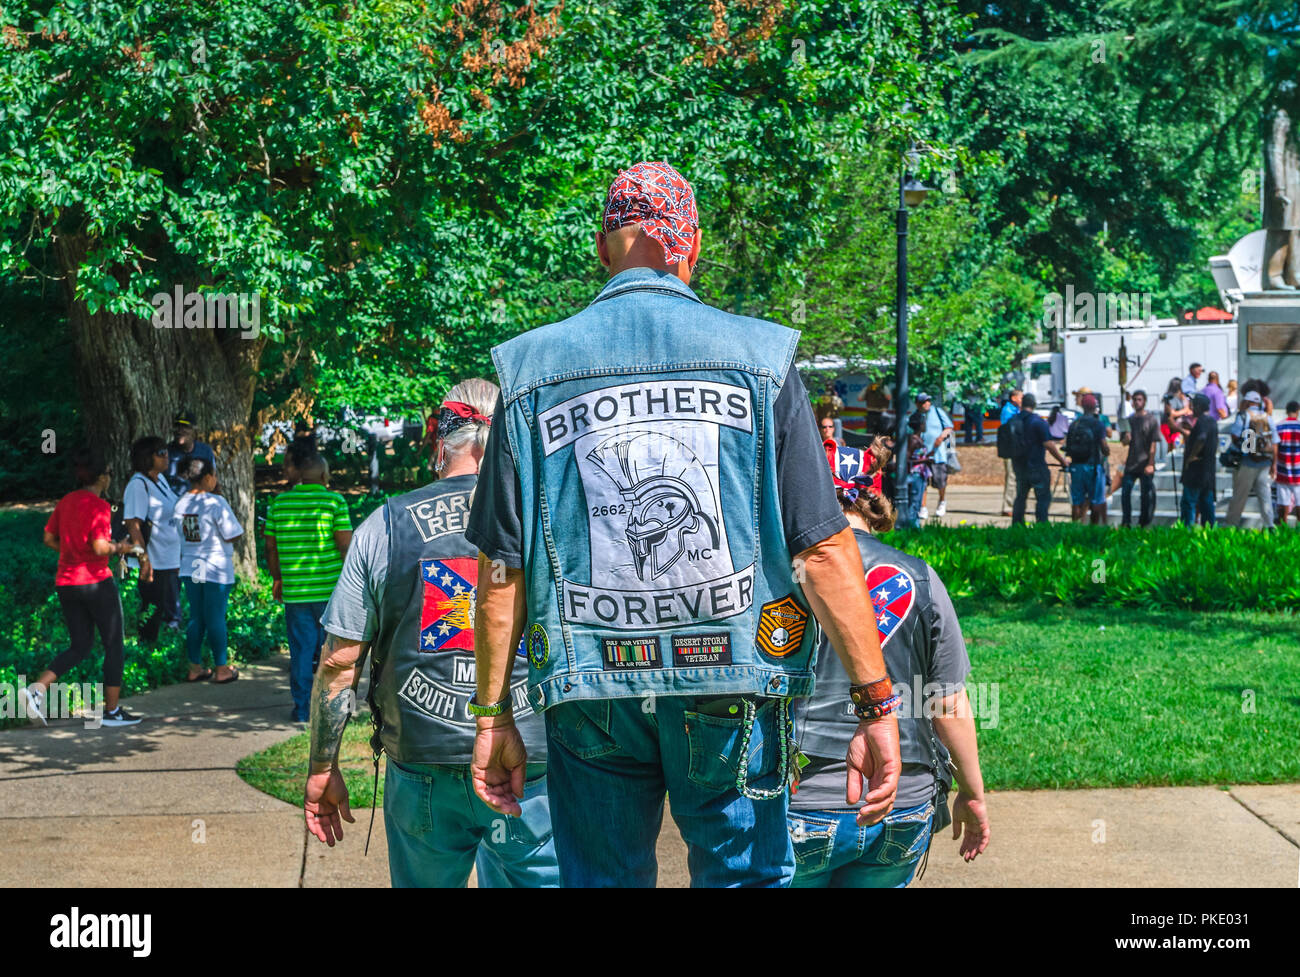 Carolina Rebels Motorcycle Club leave the South Carolina State House after protesting the Confederate flag's removal, July 10, 2015, in Columbia, S.C. - Stock Image